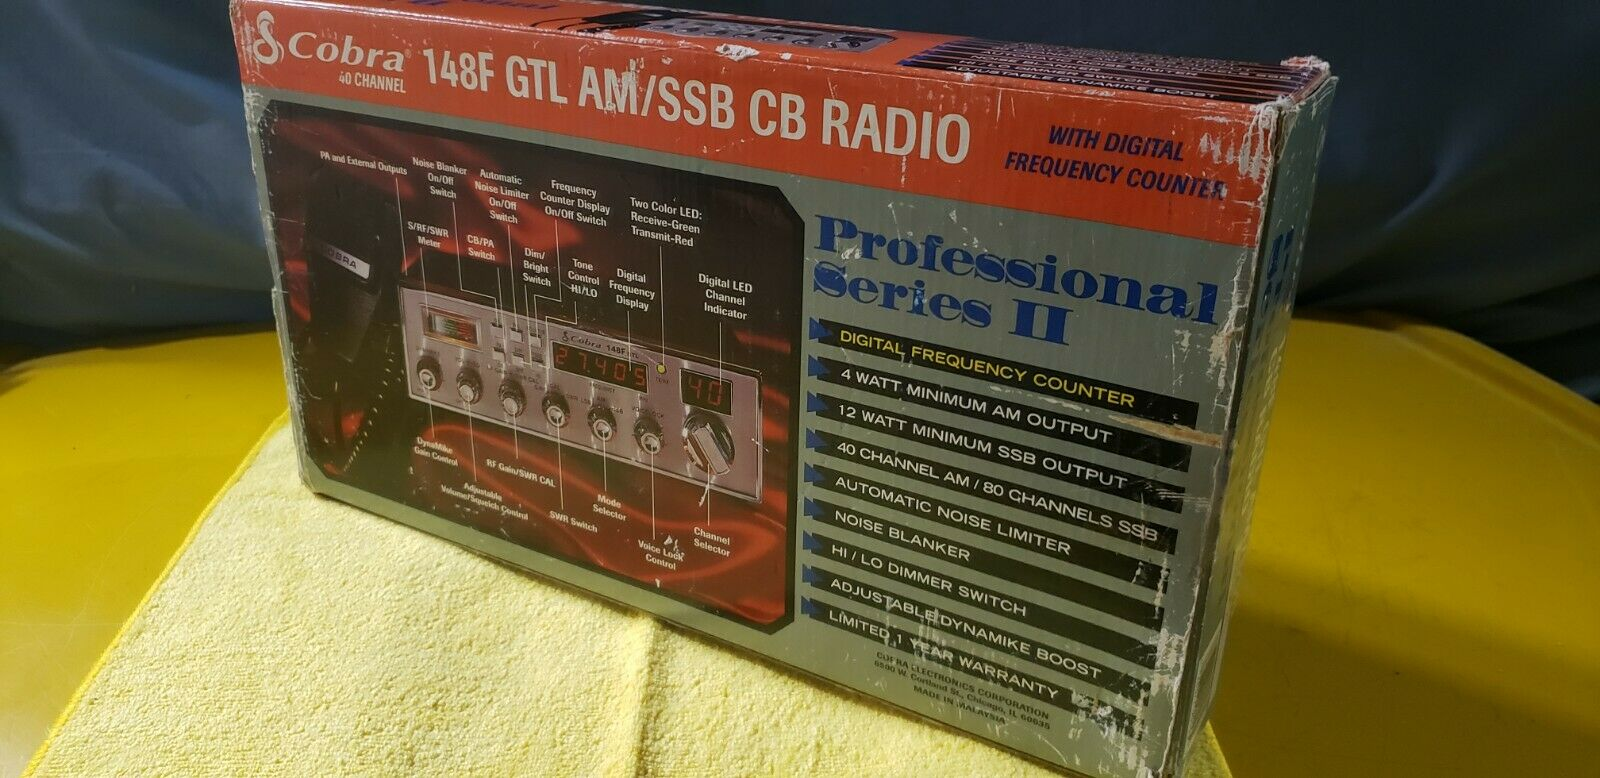 COBRA 148GTL (F) IN BOX*AM/FM/SSB OLD SCHOOL ORIGINAL*COLLECTOR QUALITY SSB RIG.. Buy it now for 979.00